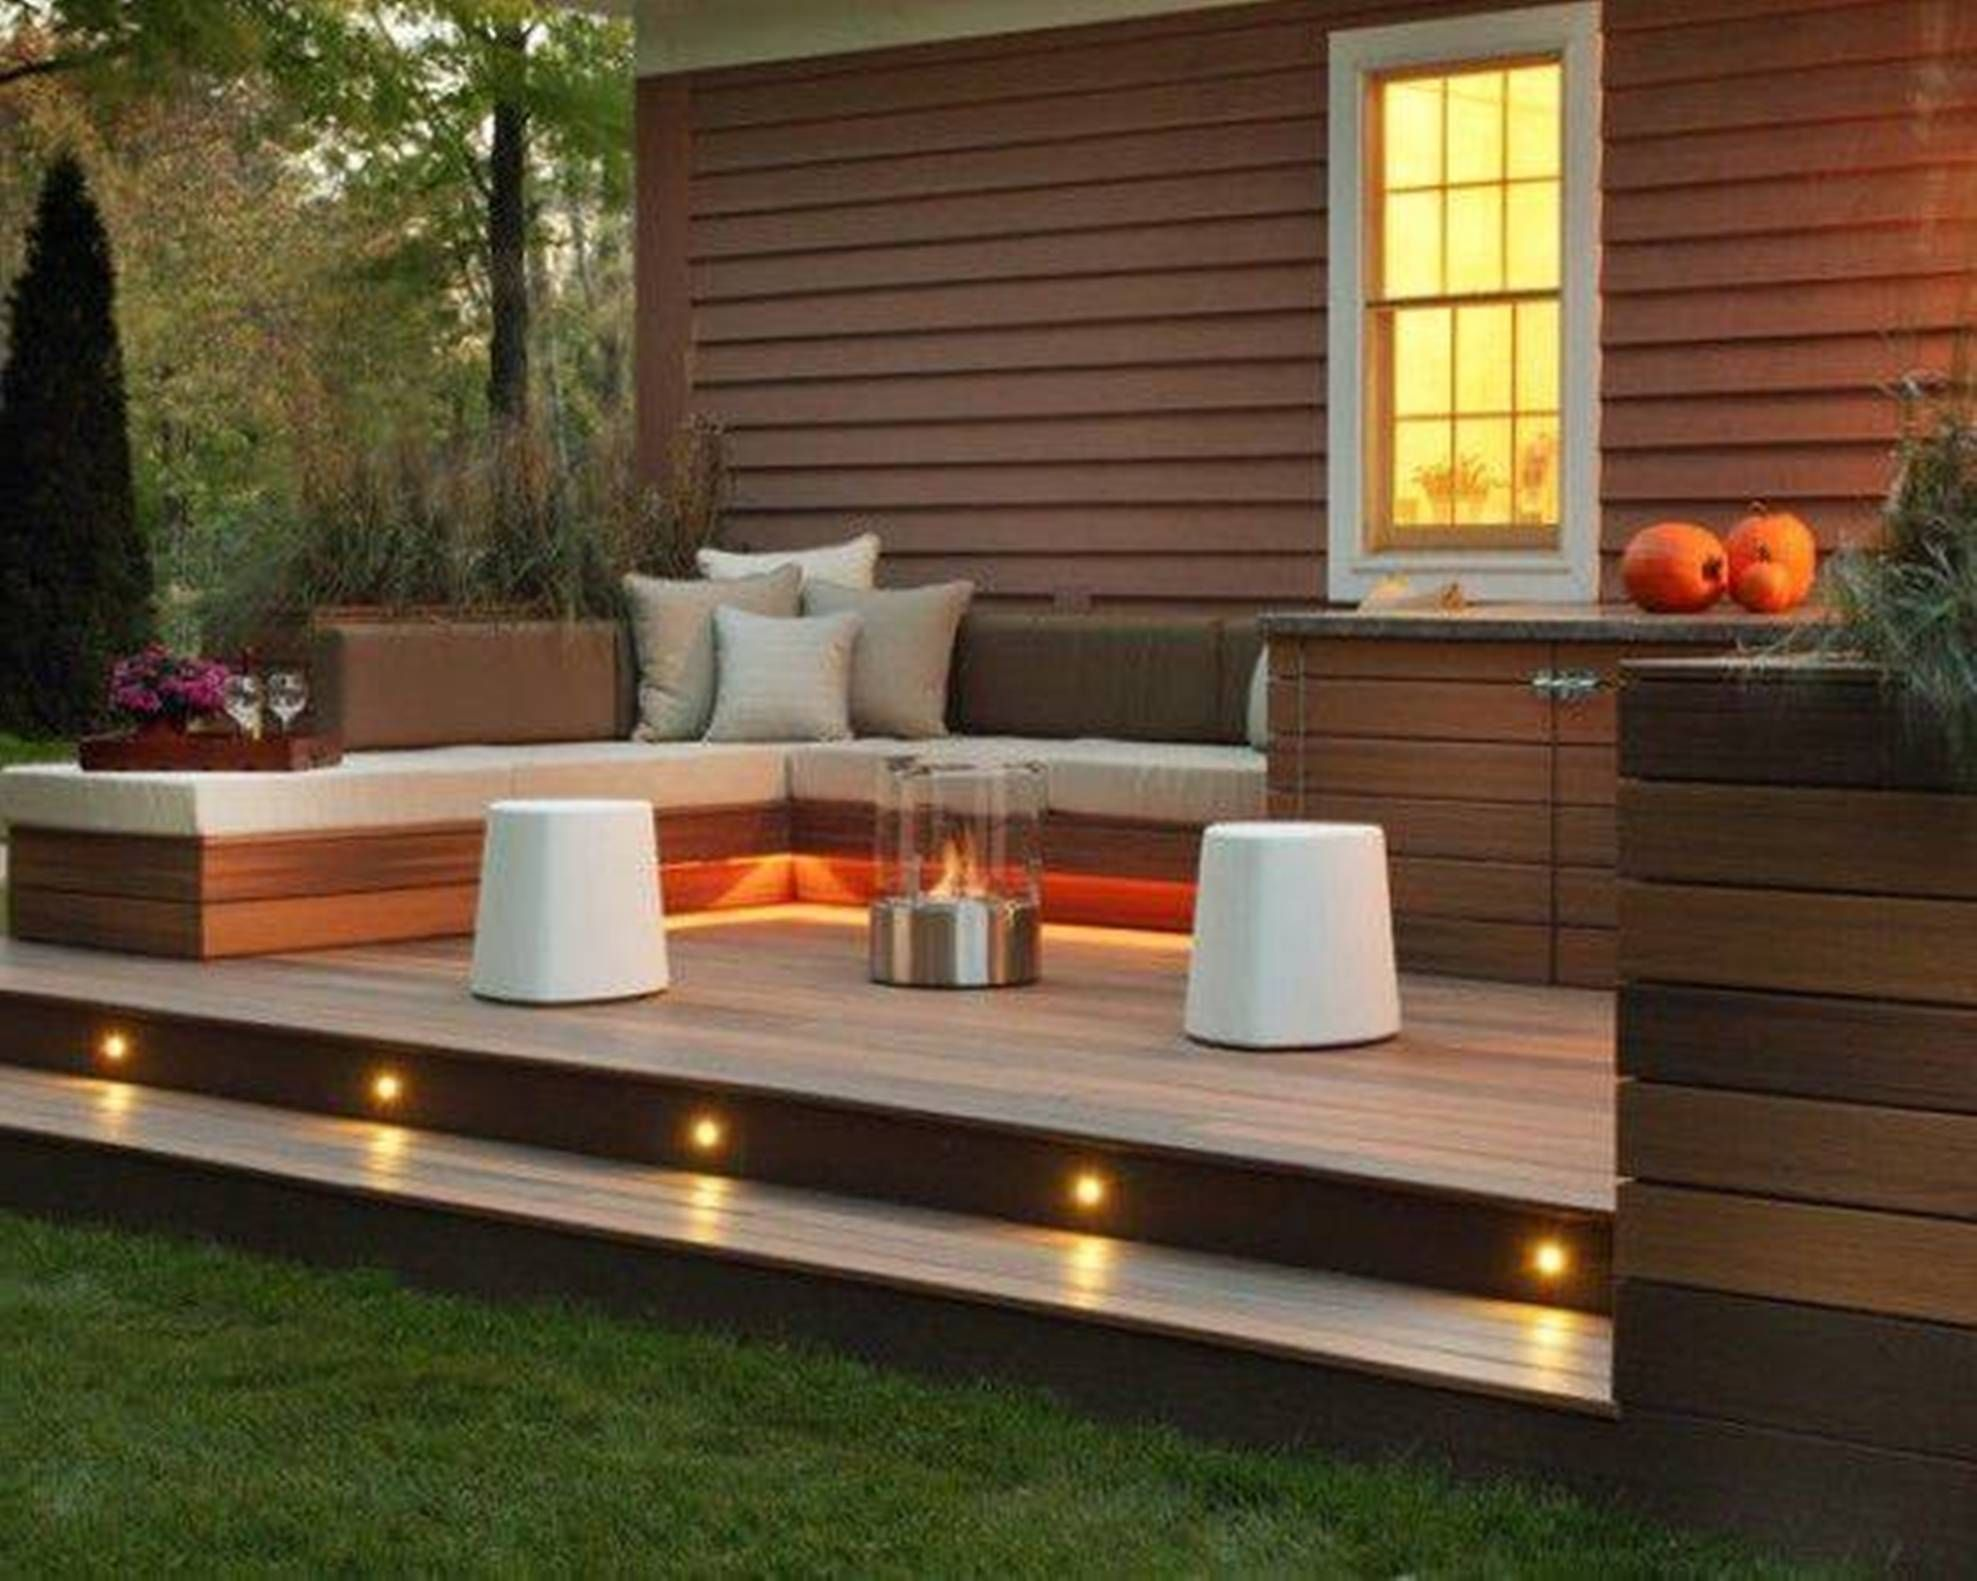 30 Best Small Deck Ideas Decorating Remodel & s